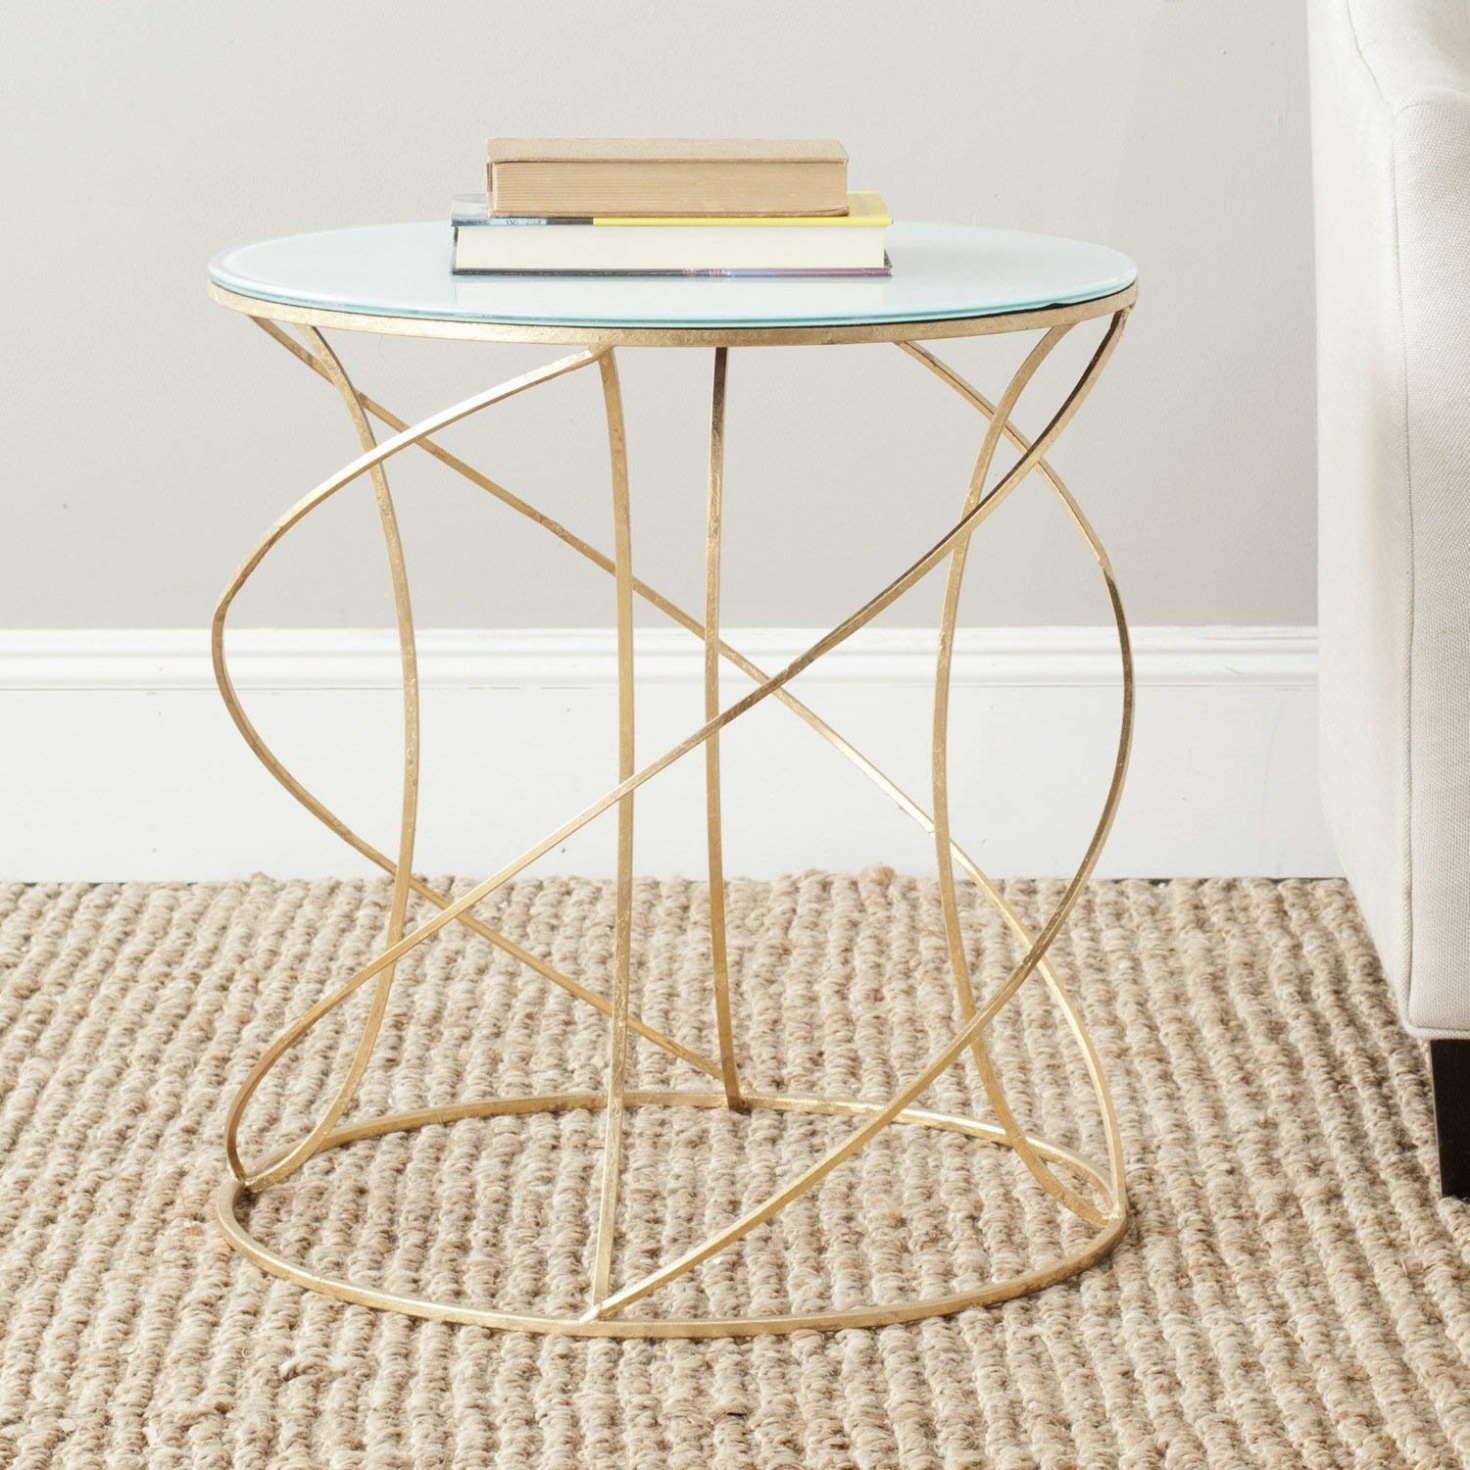 furniture safavieh home collection cagney gold accent table for white round rustic chairside entry pieces homesense tables corner laminate door trim sportcraft ping pong oversized